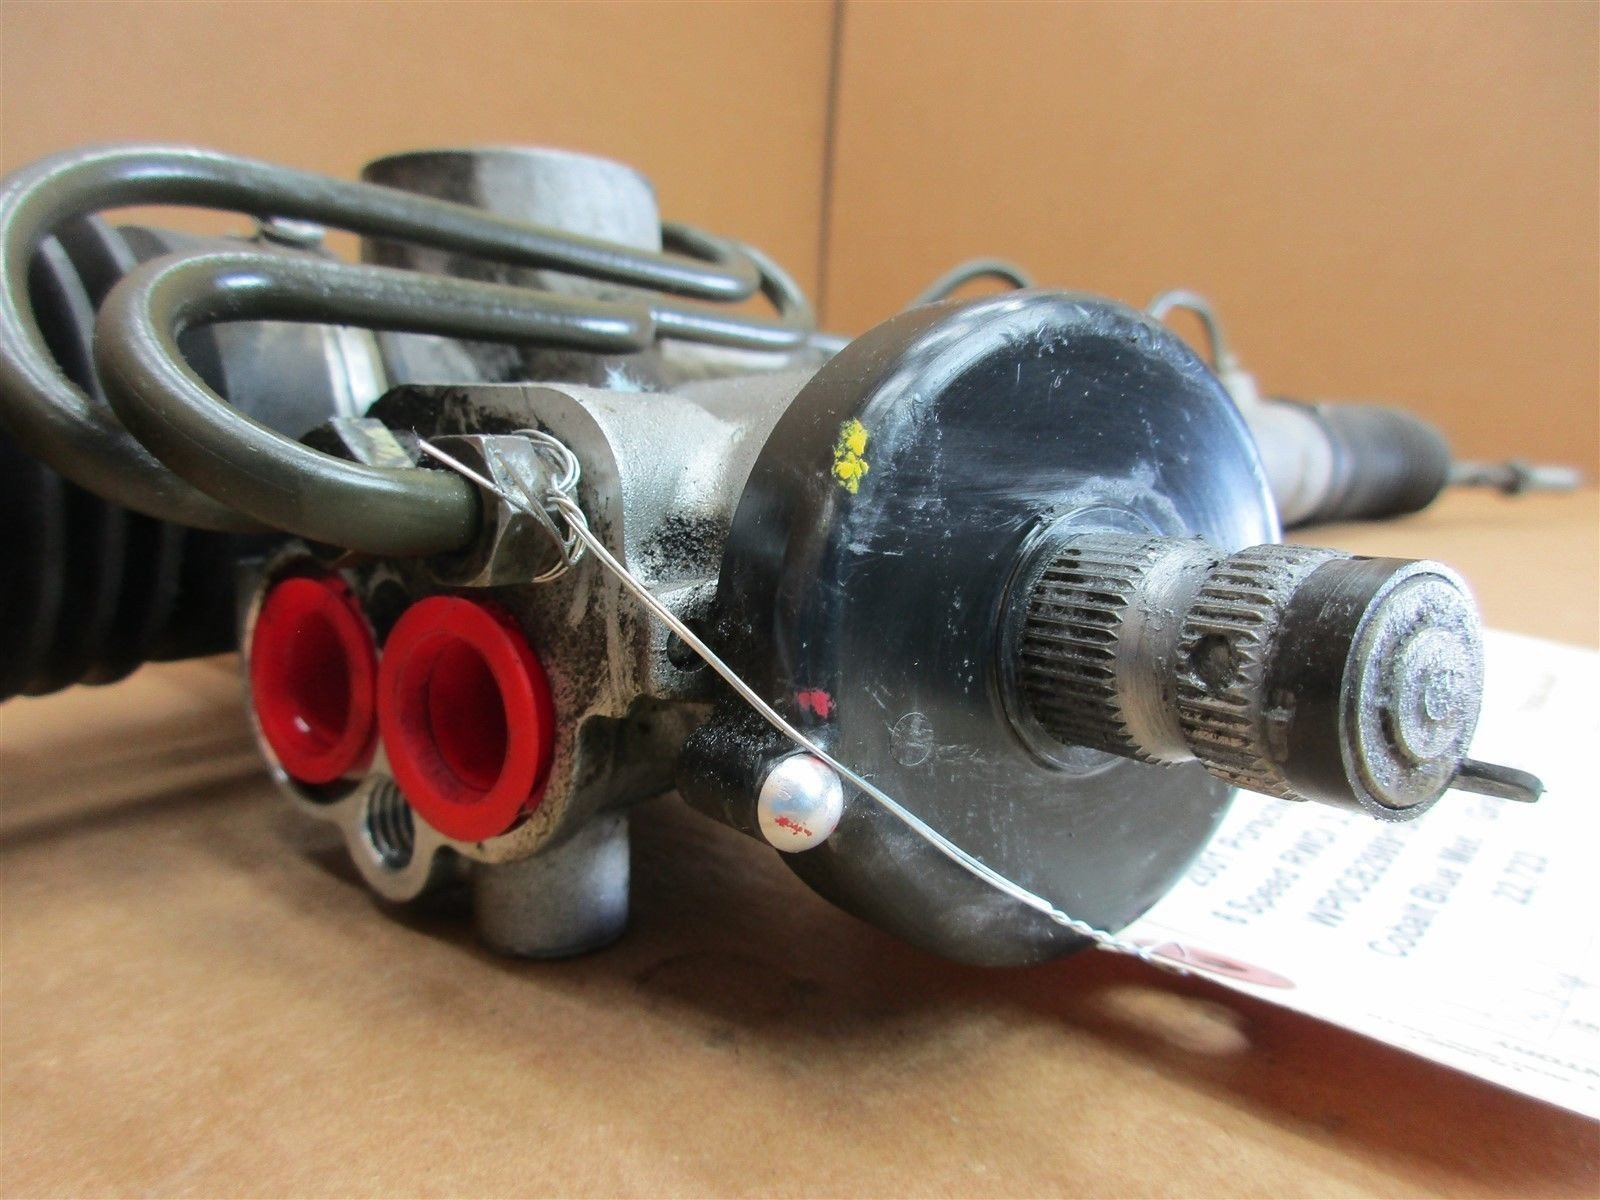 01 Boxster S RWD Porsche 986 PINION POWER STEERING RACK 99634701107 22,723